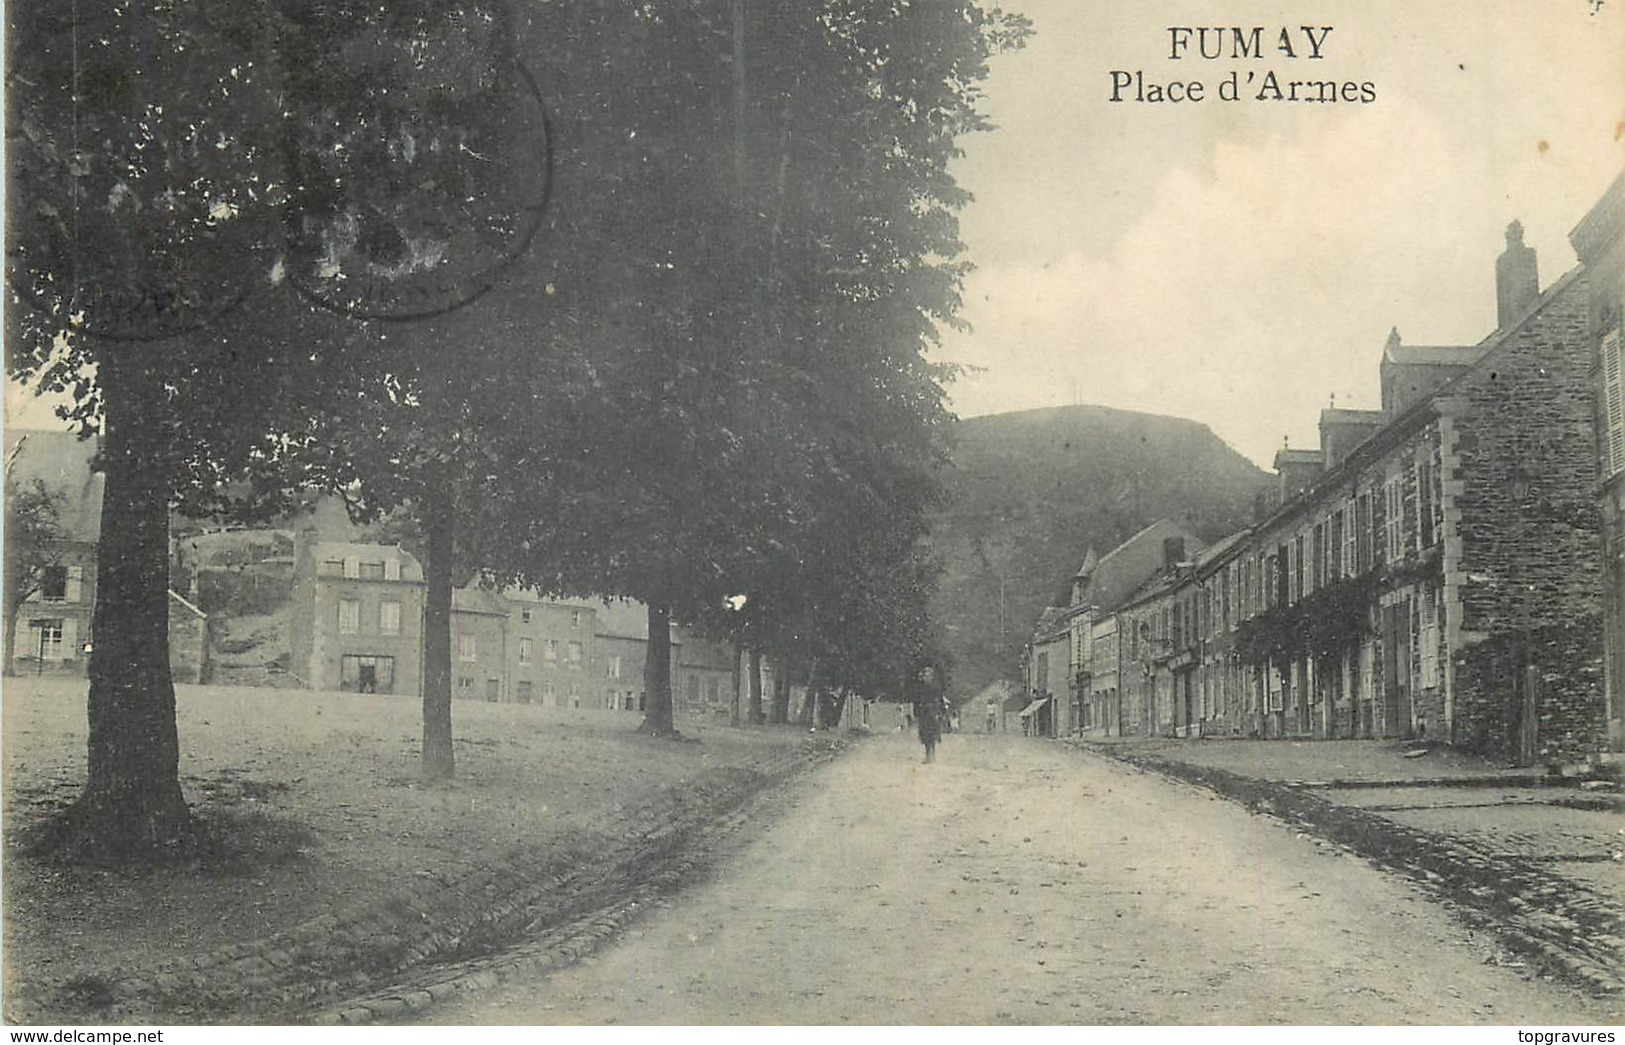 08 FUMAY PLACE D'ARMES - Fumay